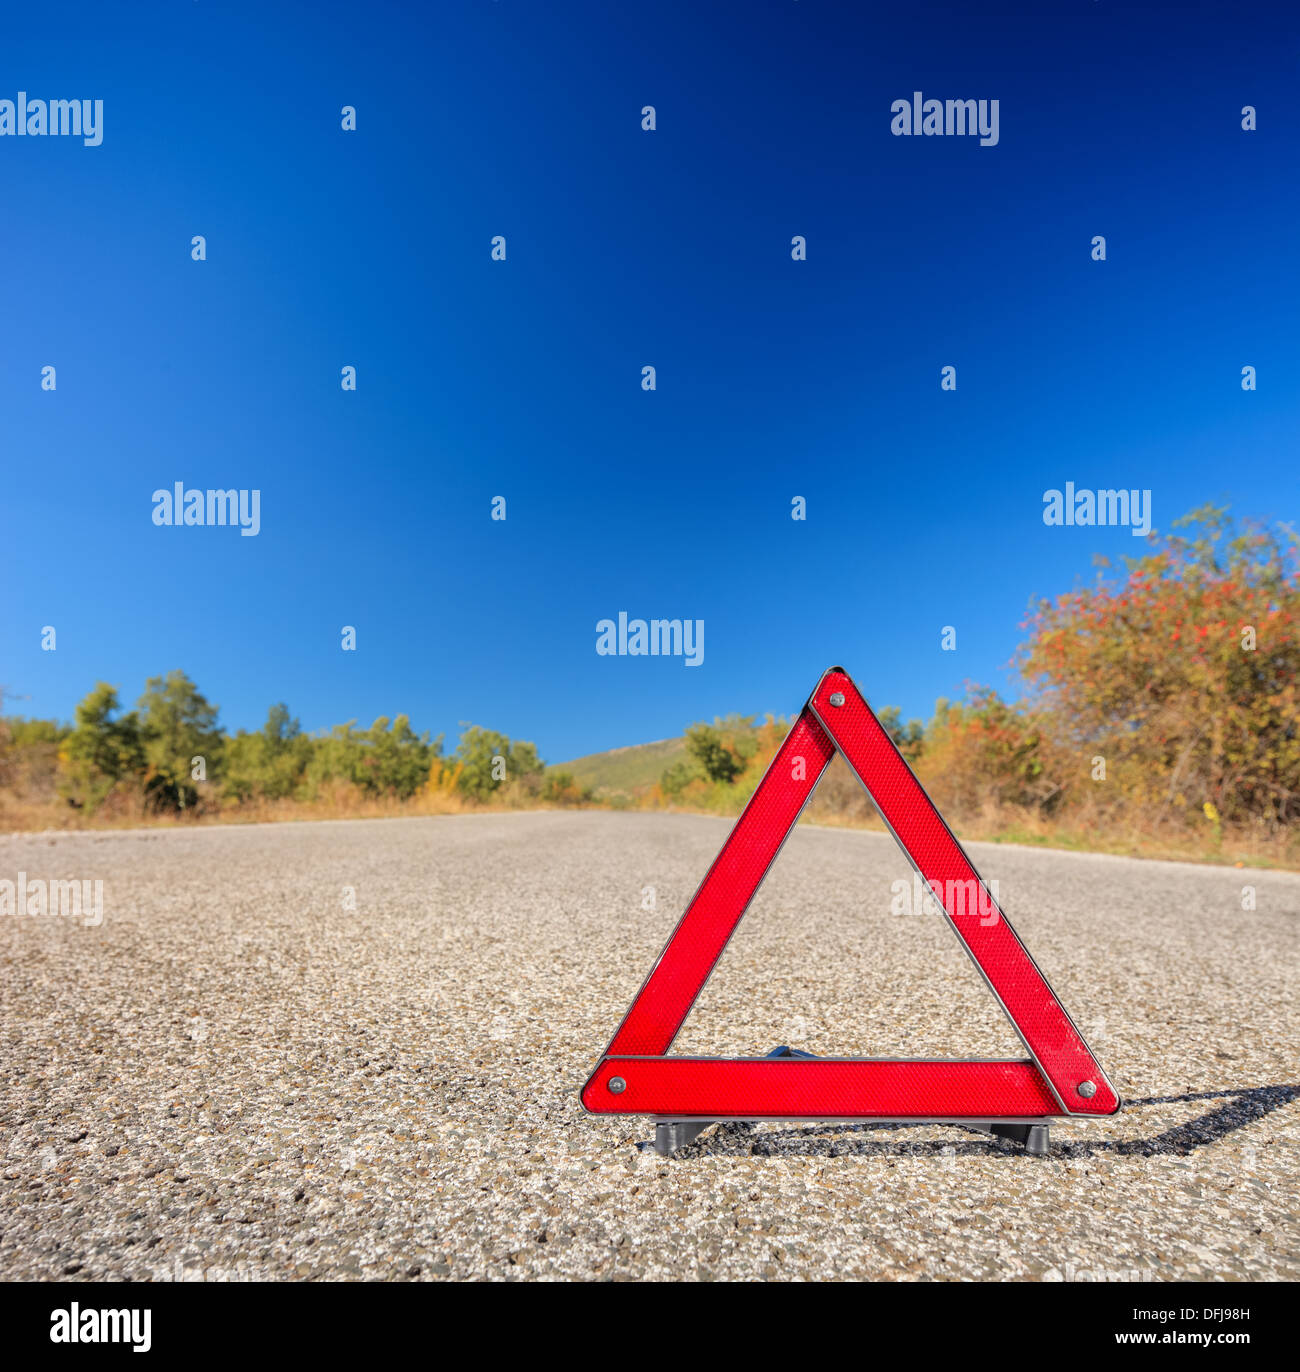 View of a red warning triangle on a road - Stock Image